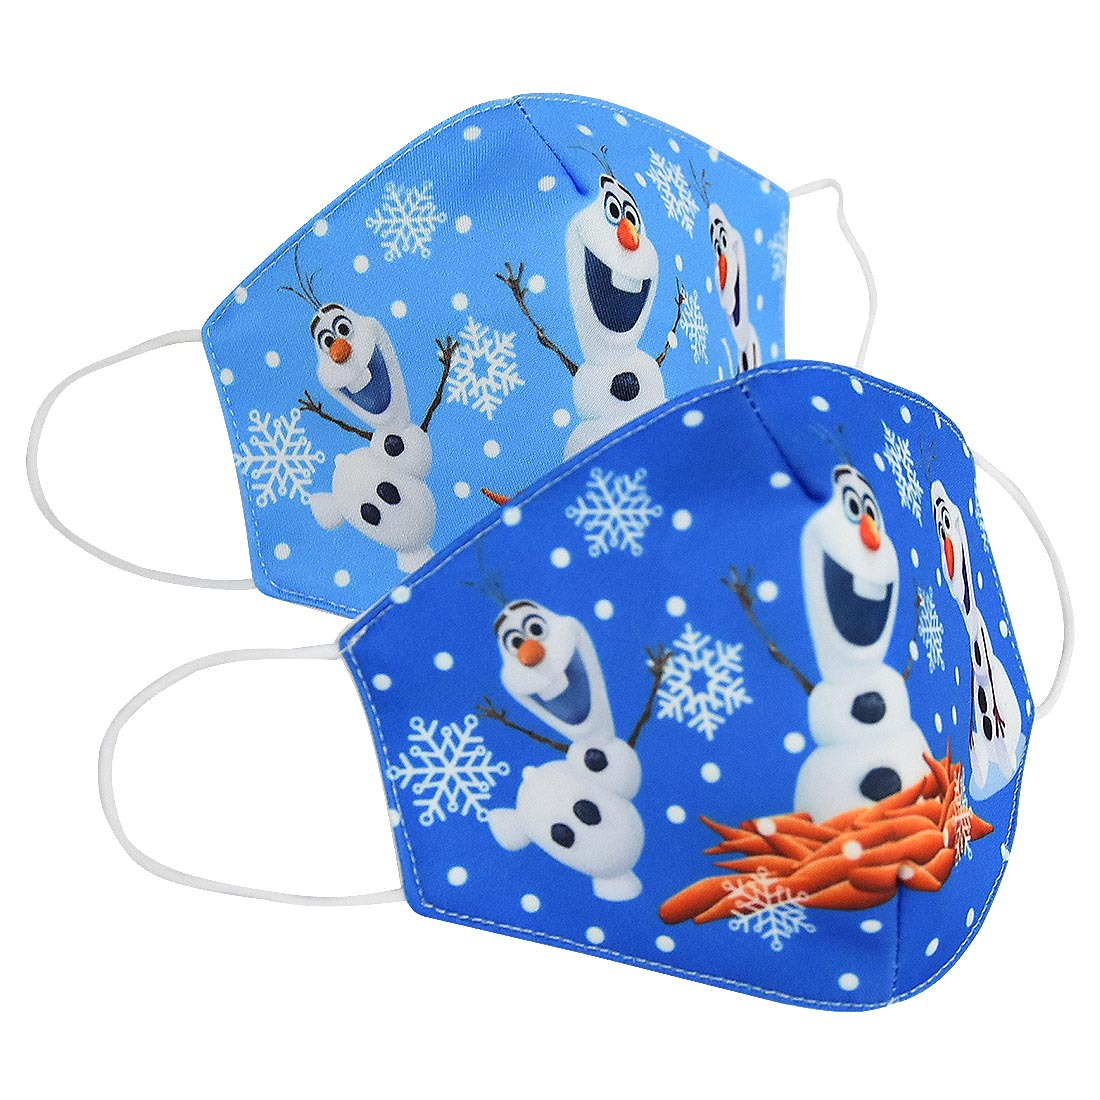 Snow Queen Olaf Cosplay Mask Cotton Protective Dustproof Masks Child Party Birthday Gift Washable Air Filter Anti Odor Smog Mask